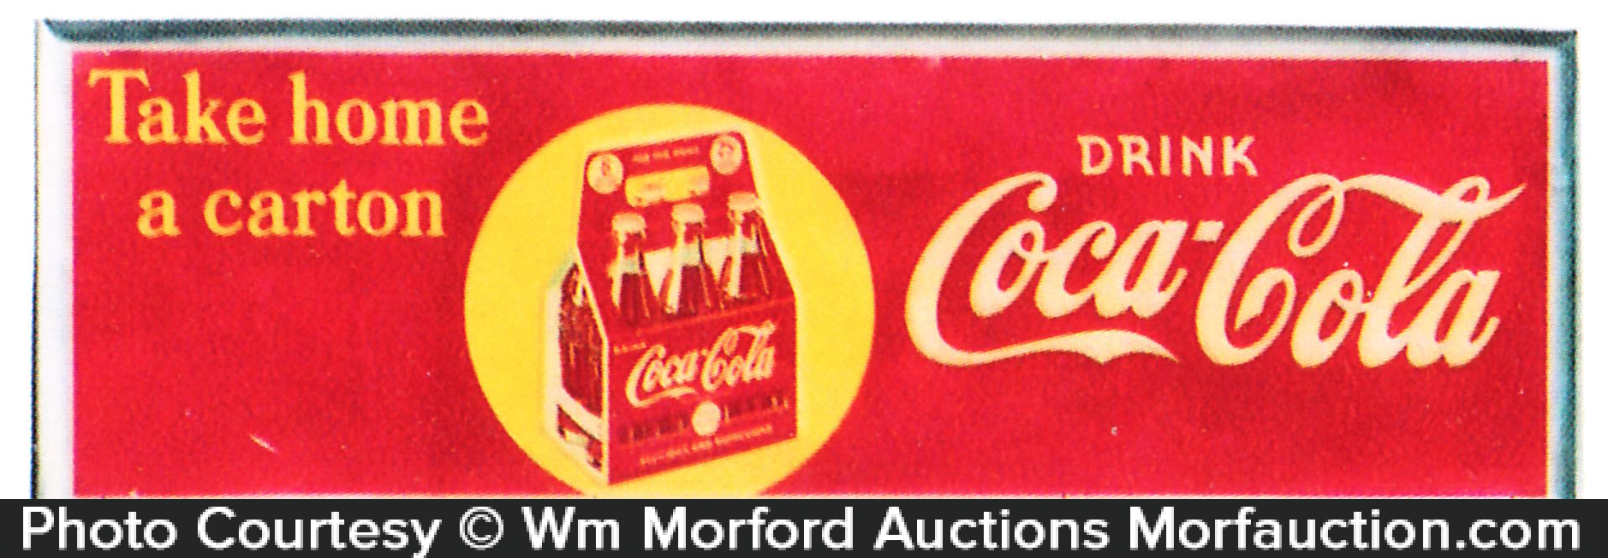 Coca-Cola Carton Sign